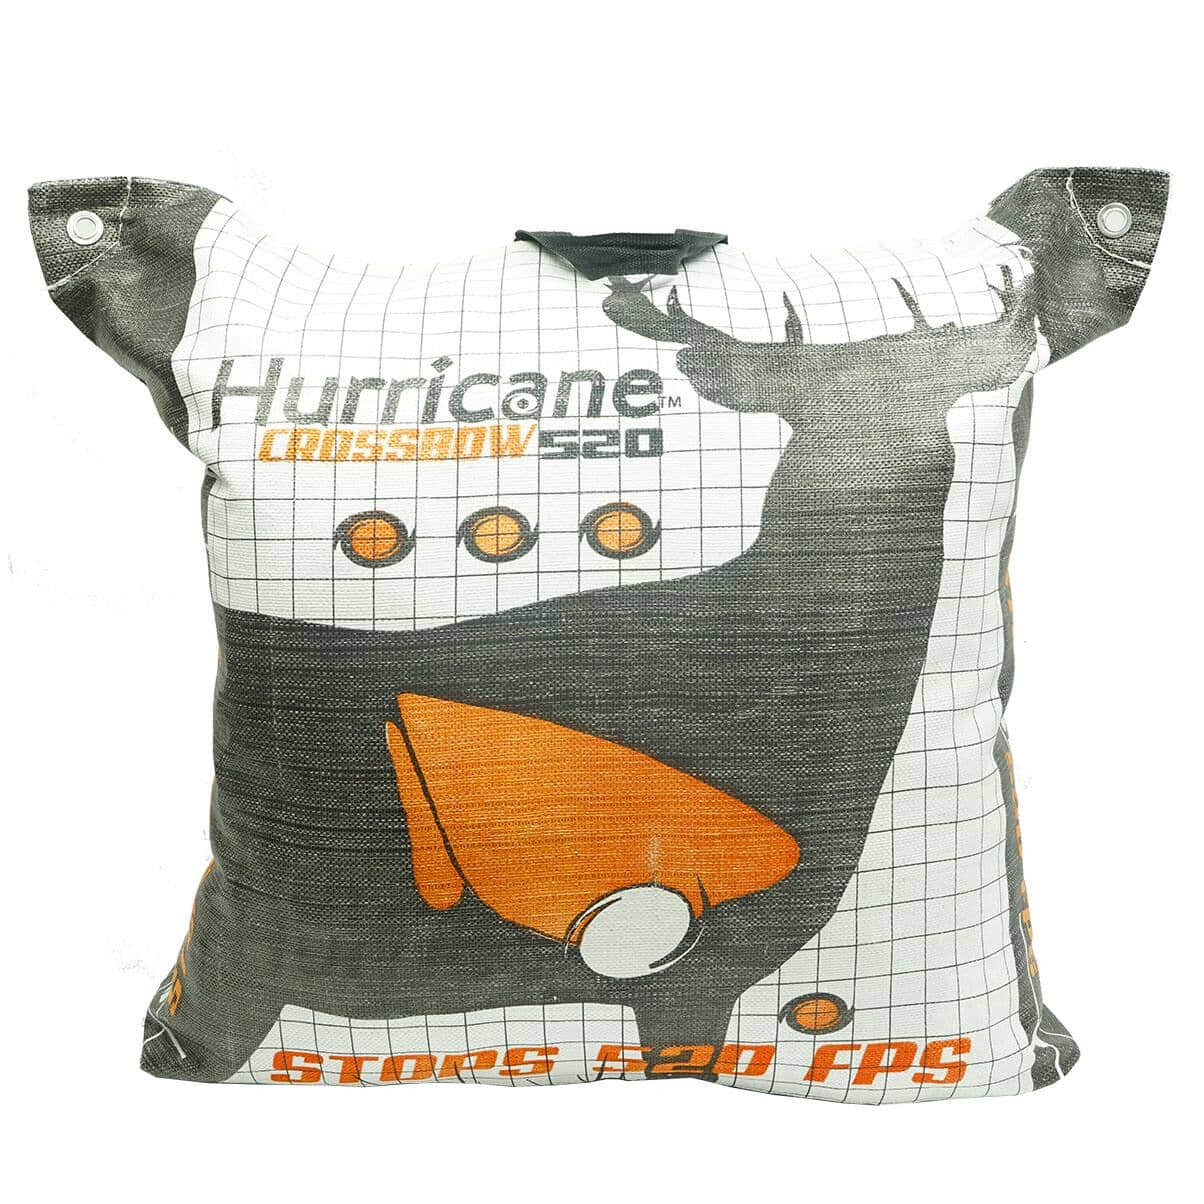 Hurricane H60410 Double Sided 460 FPS Woven Crossbow Archery Bag Target, White - $36.99 + Free Shipping